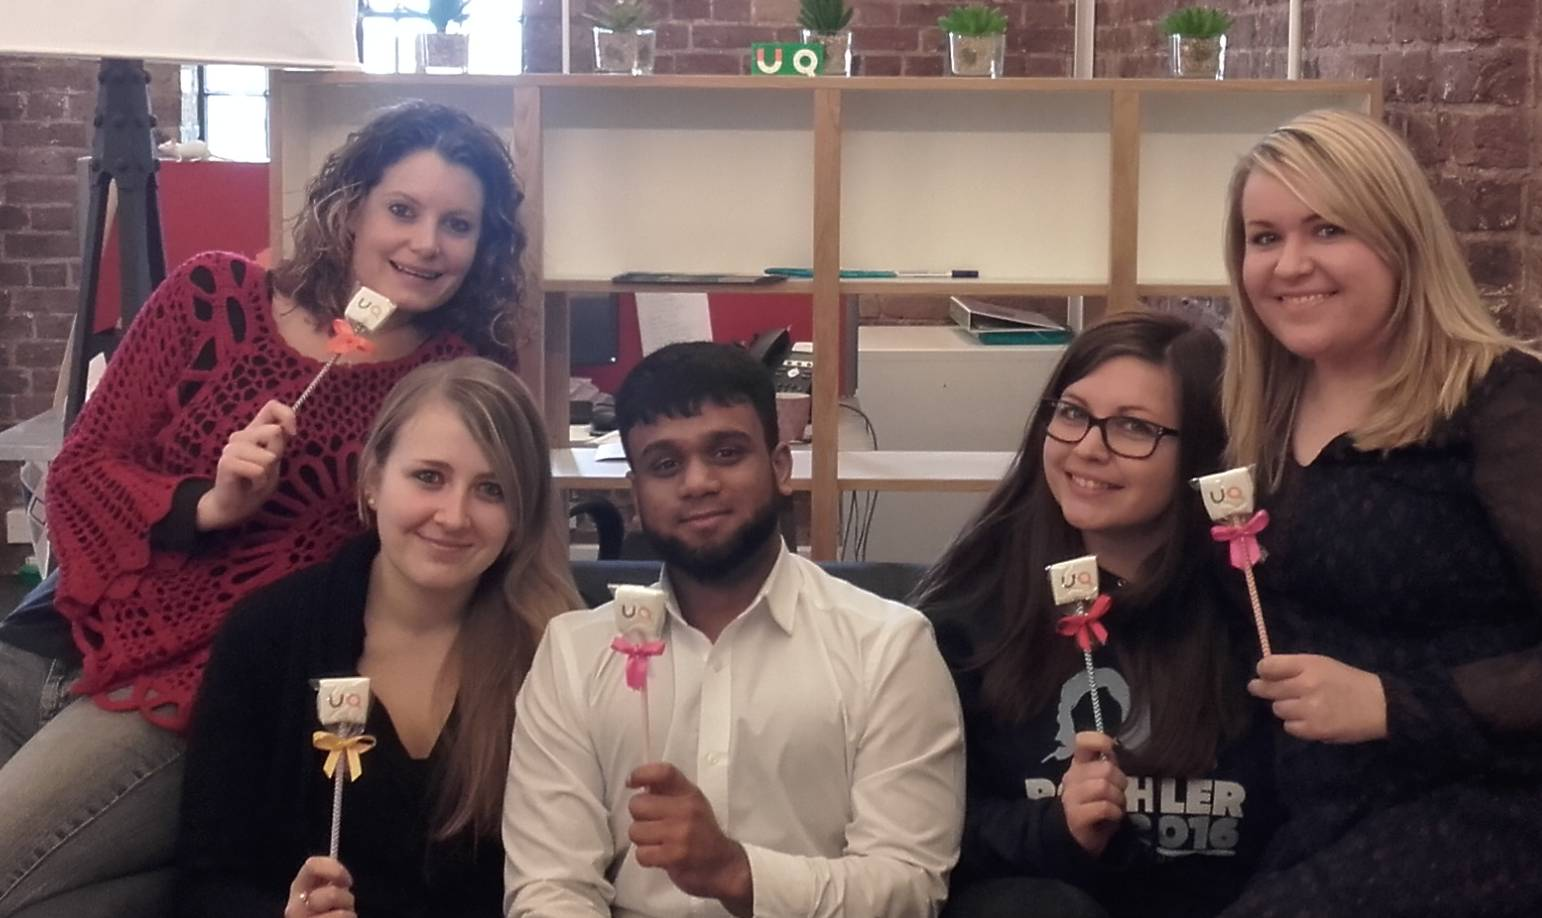 The UniQuest team with marshmallows